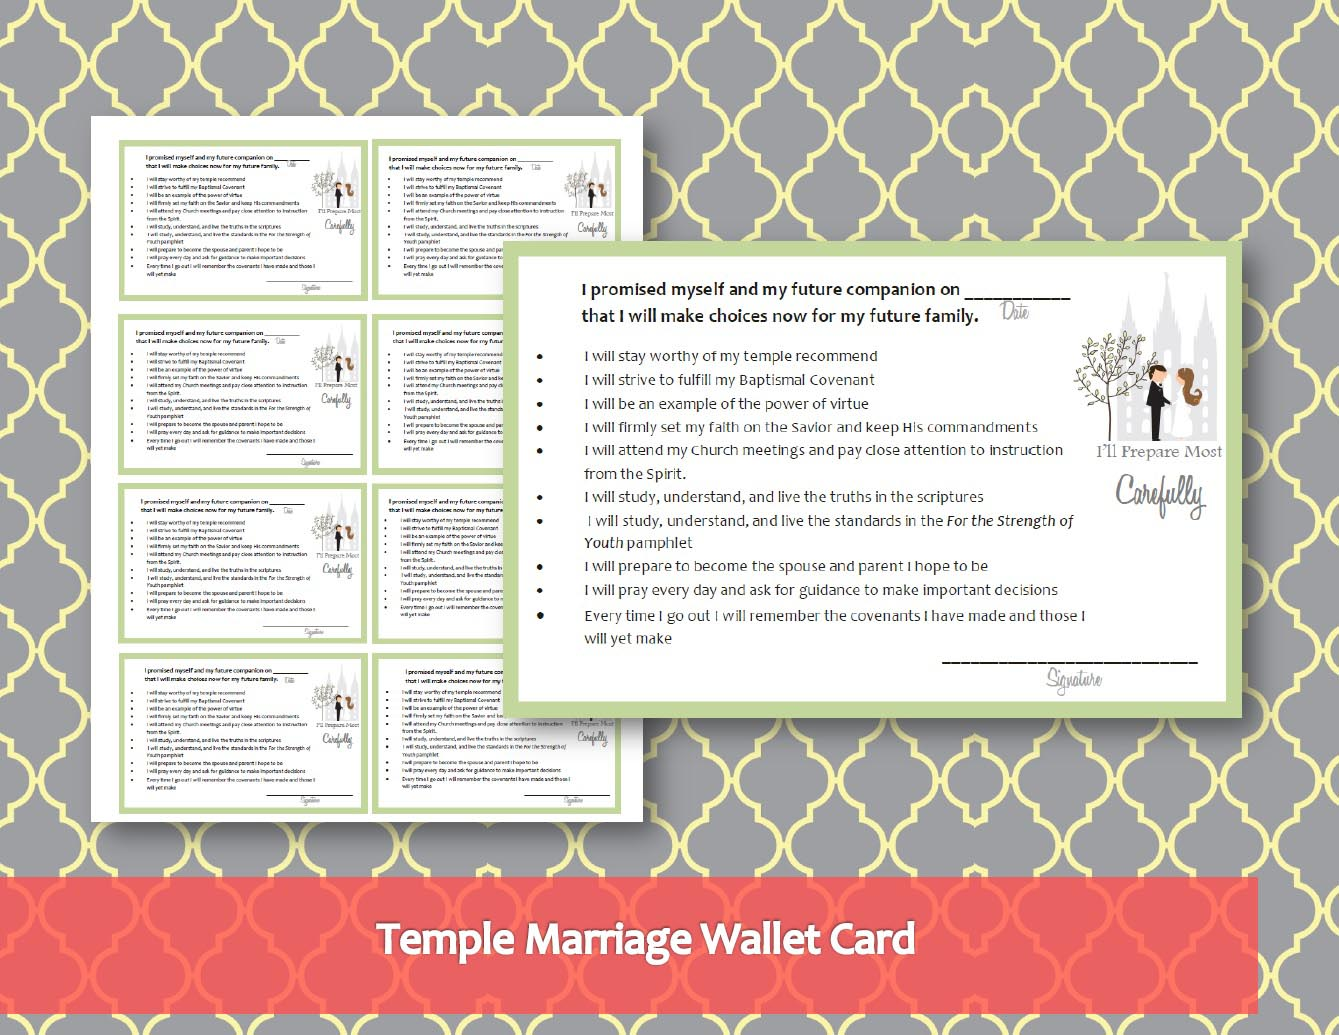 Temple Marriage Wallet Card